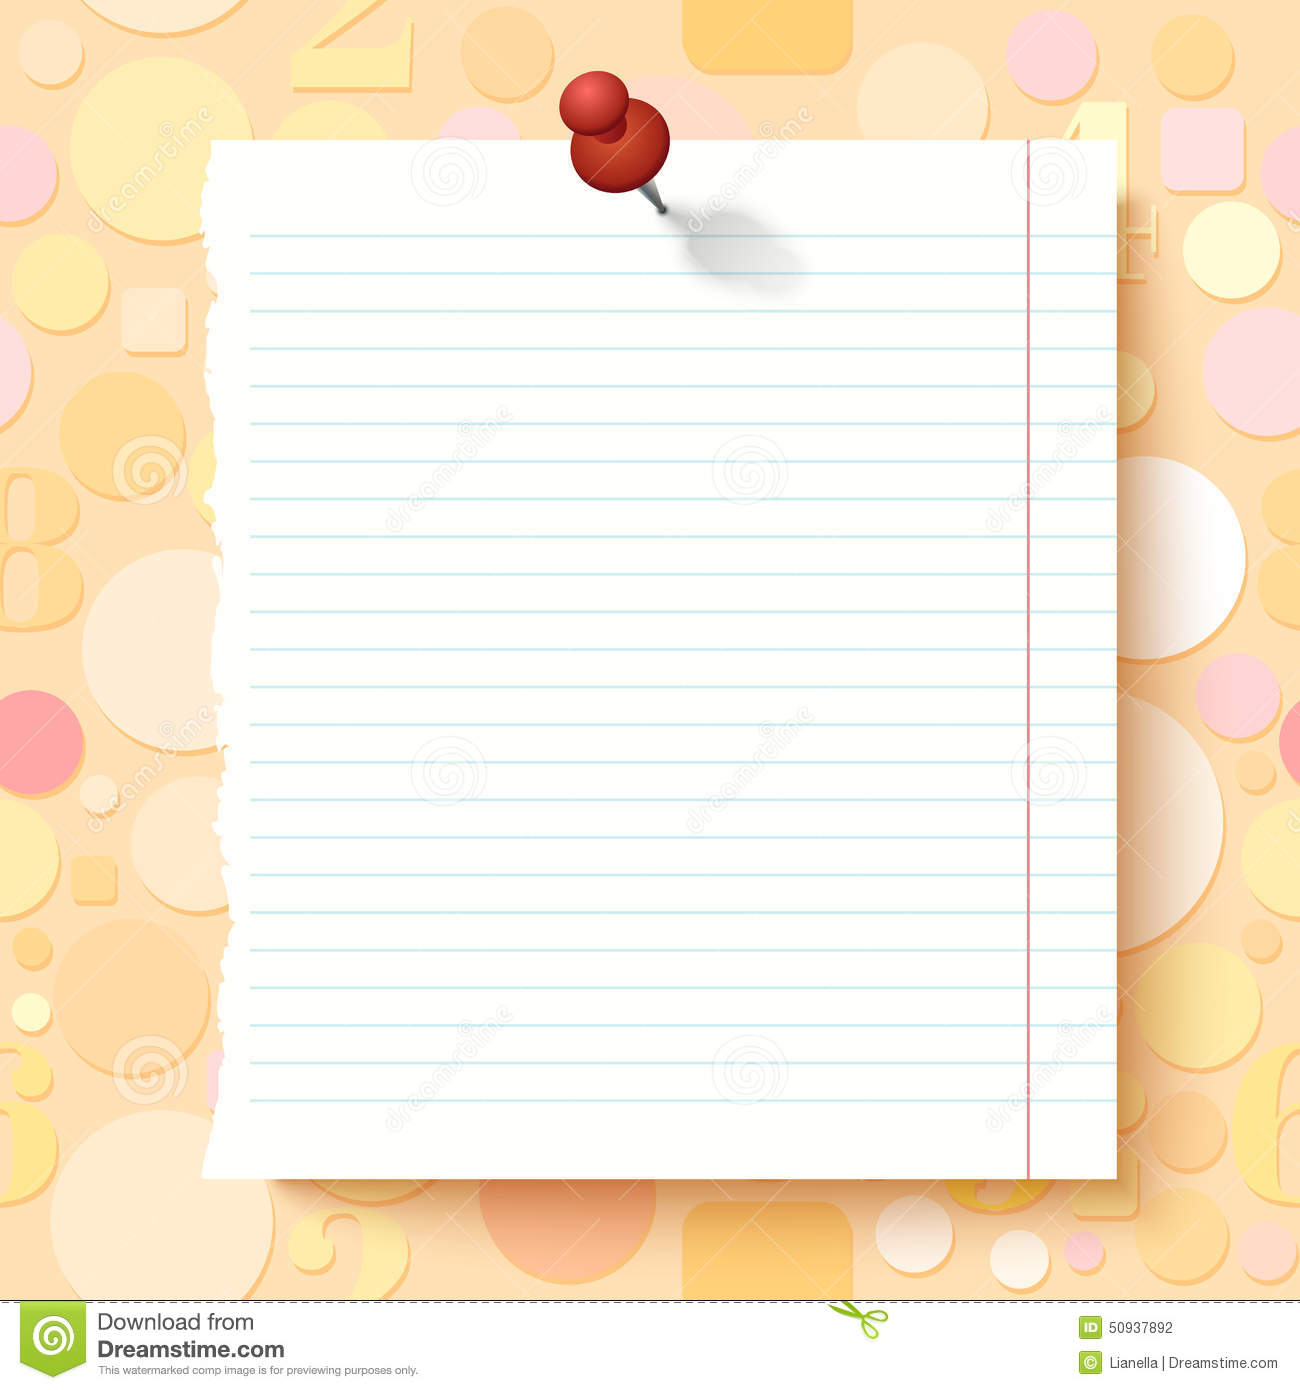 Empty Exercise Book Paper Sheet On Light Background Stock Vector.